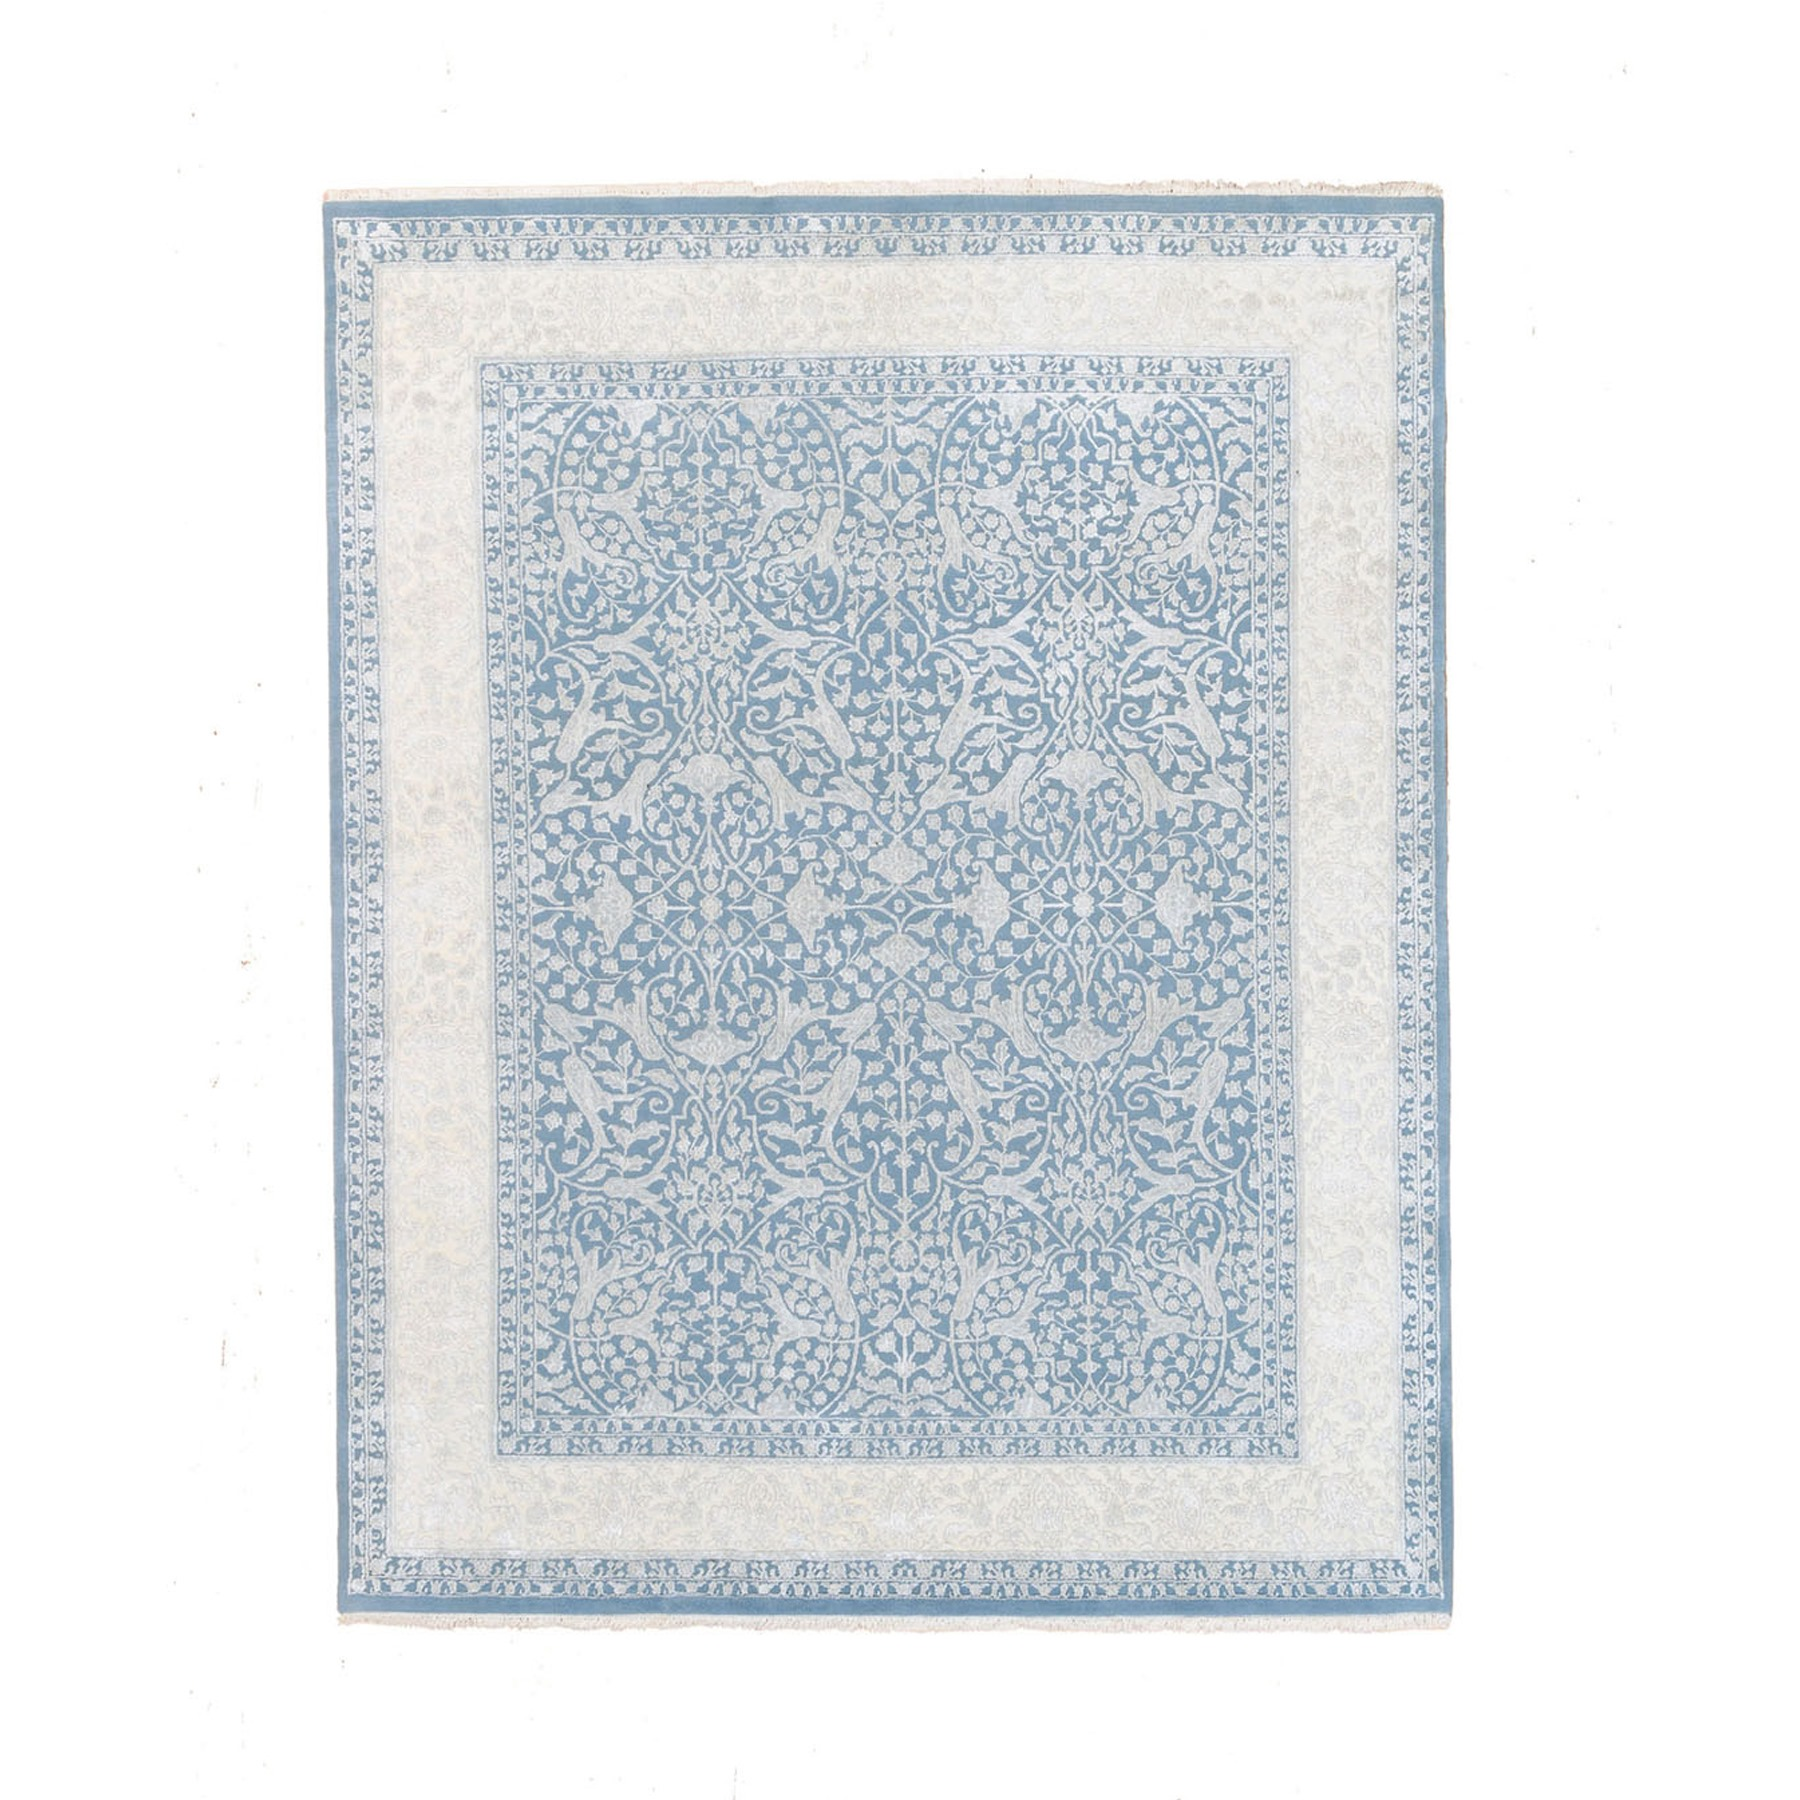 Pirniakan Collection Hand Knotted Blue Rug No: 1124488